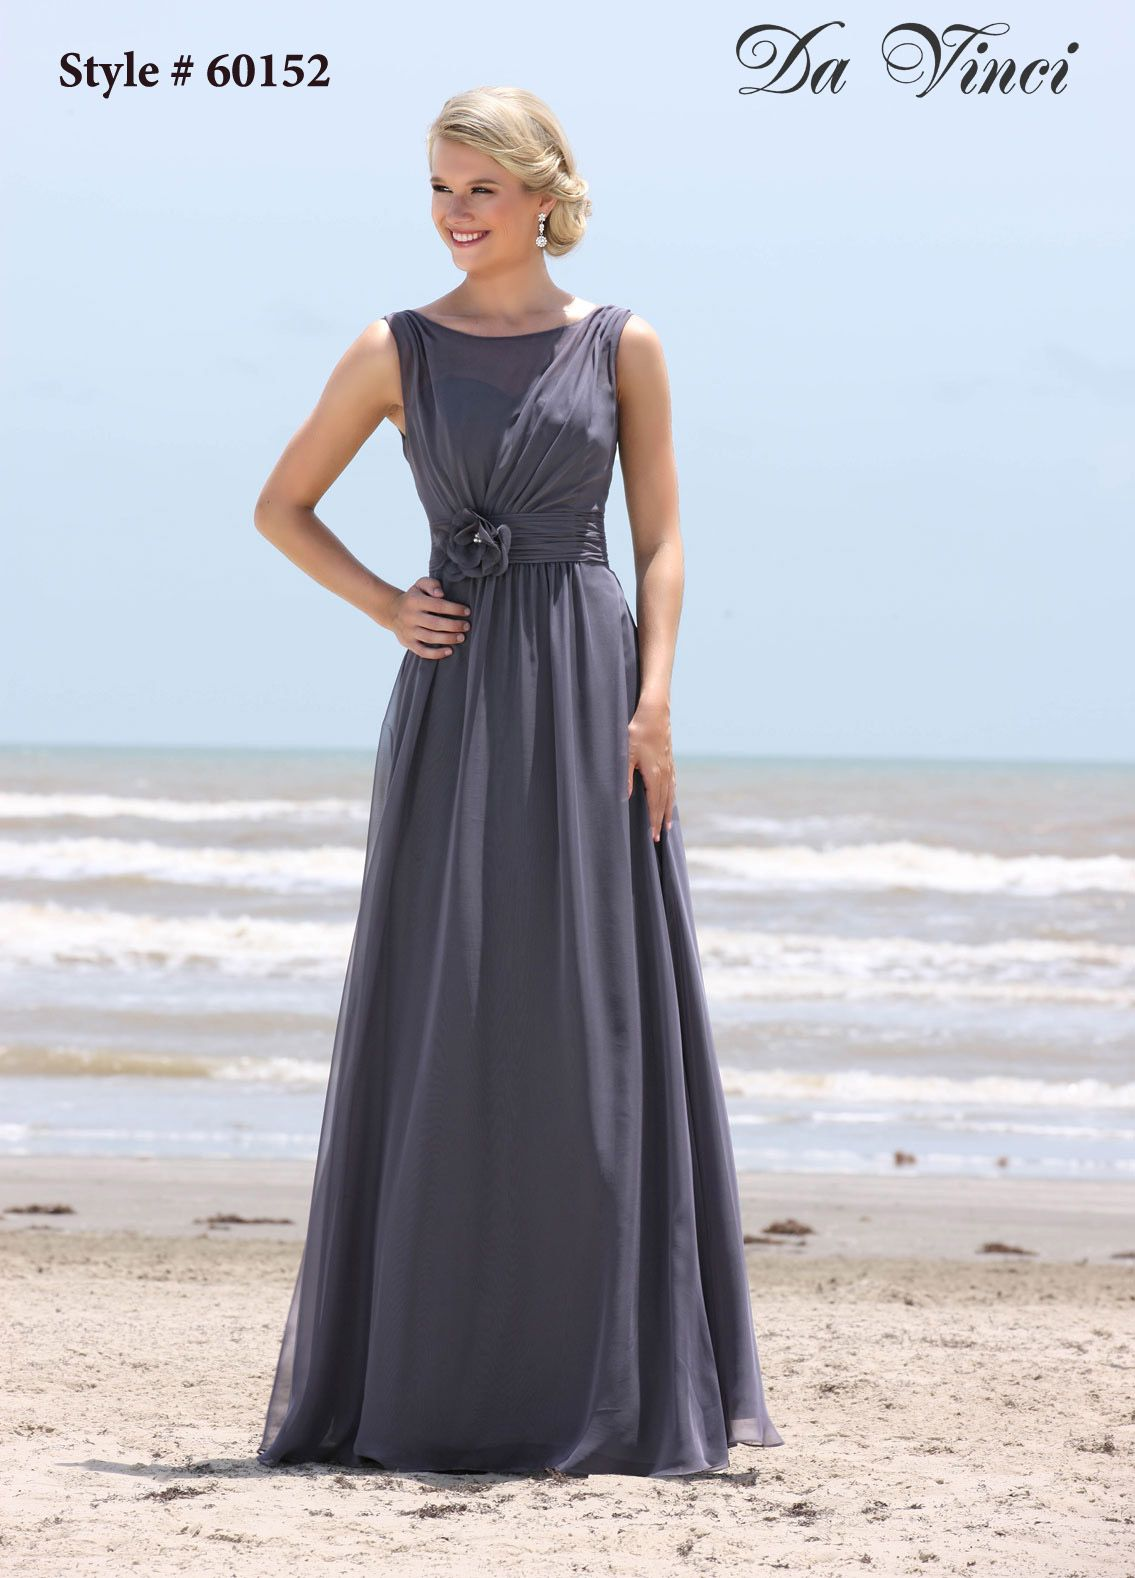 Spring 2014 davinci bridesmaids style 60152 bridesmaid 60152 floor length long chiffon bridesmaids dress with a modest illusion neckline and flower detail pictured here in a sophisticated grey color ombrellifo Choice Image